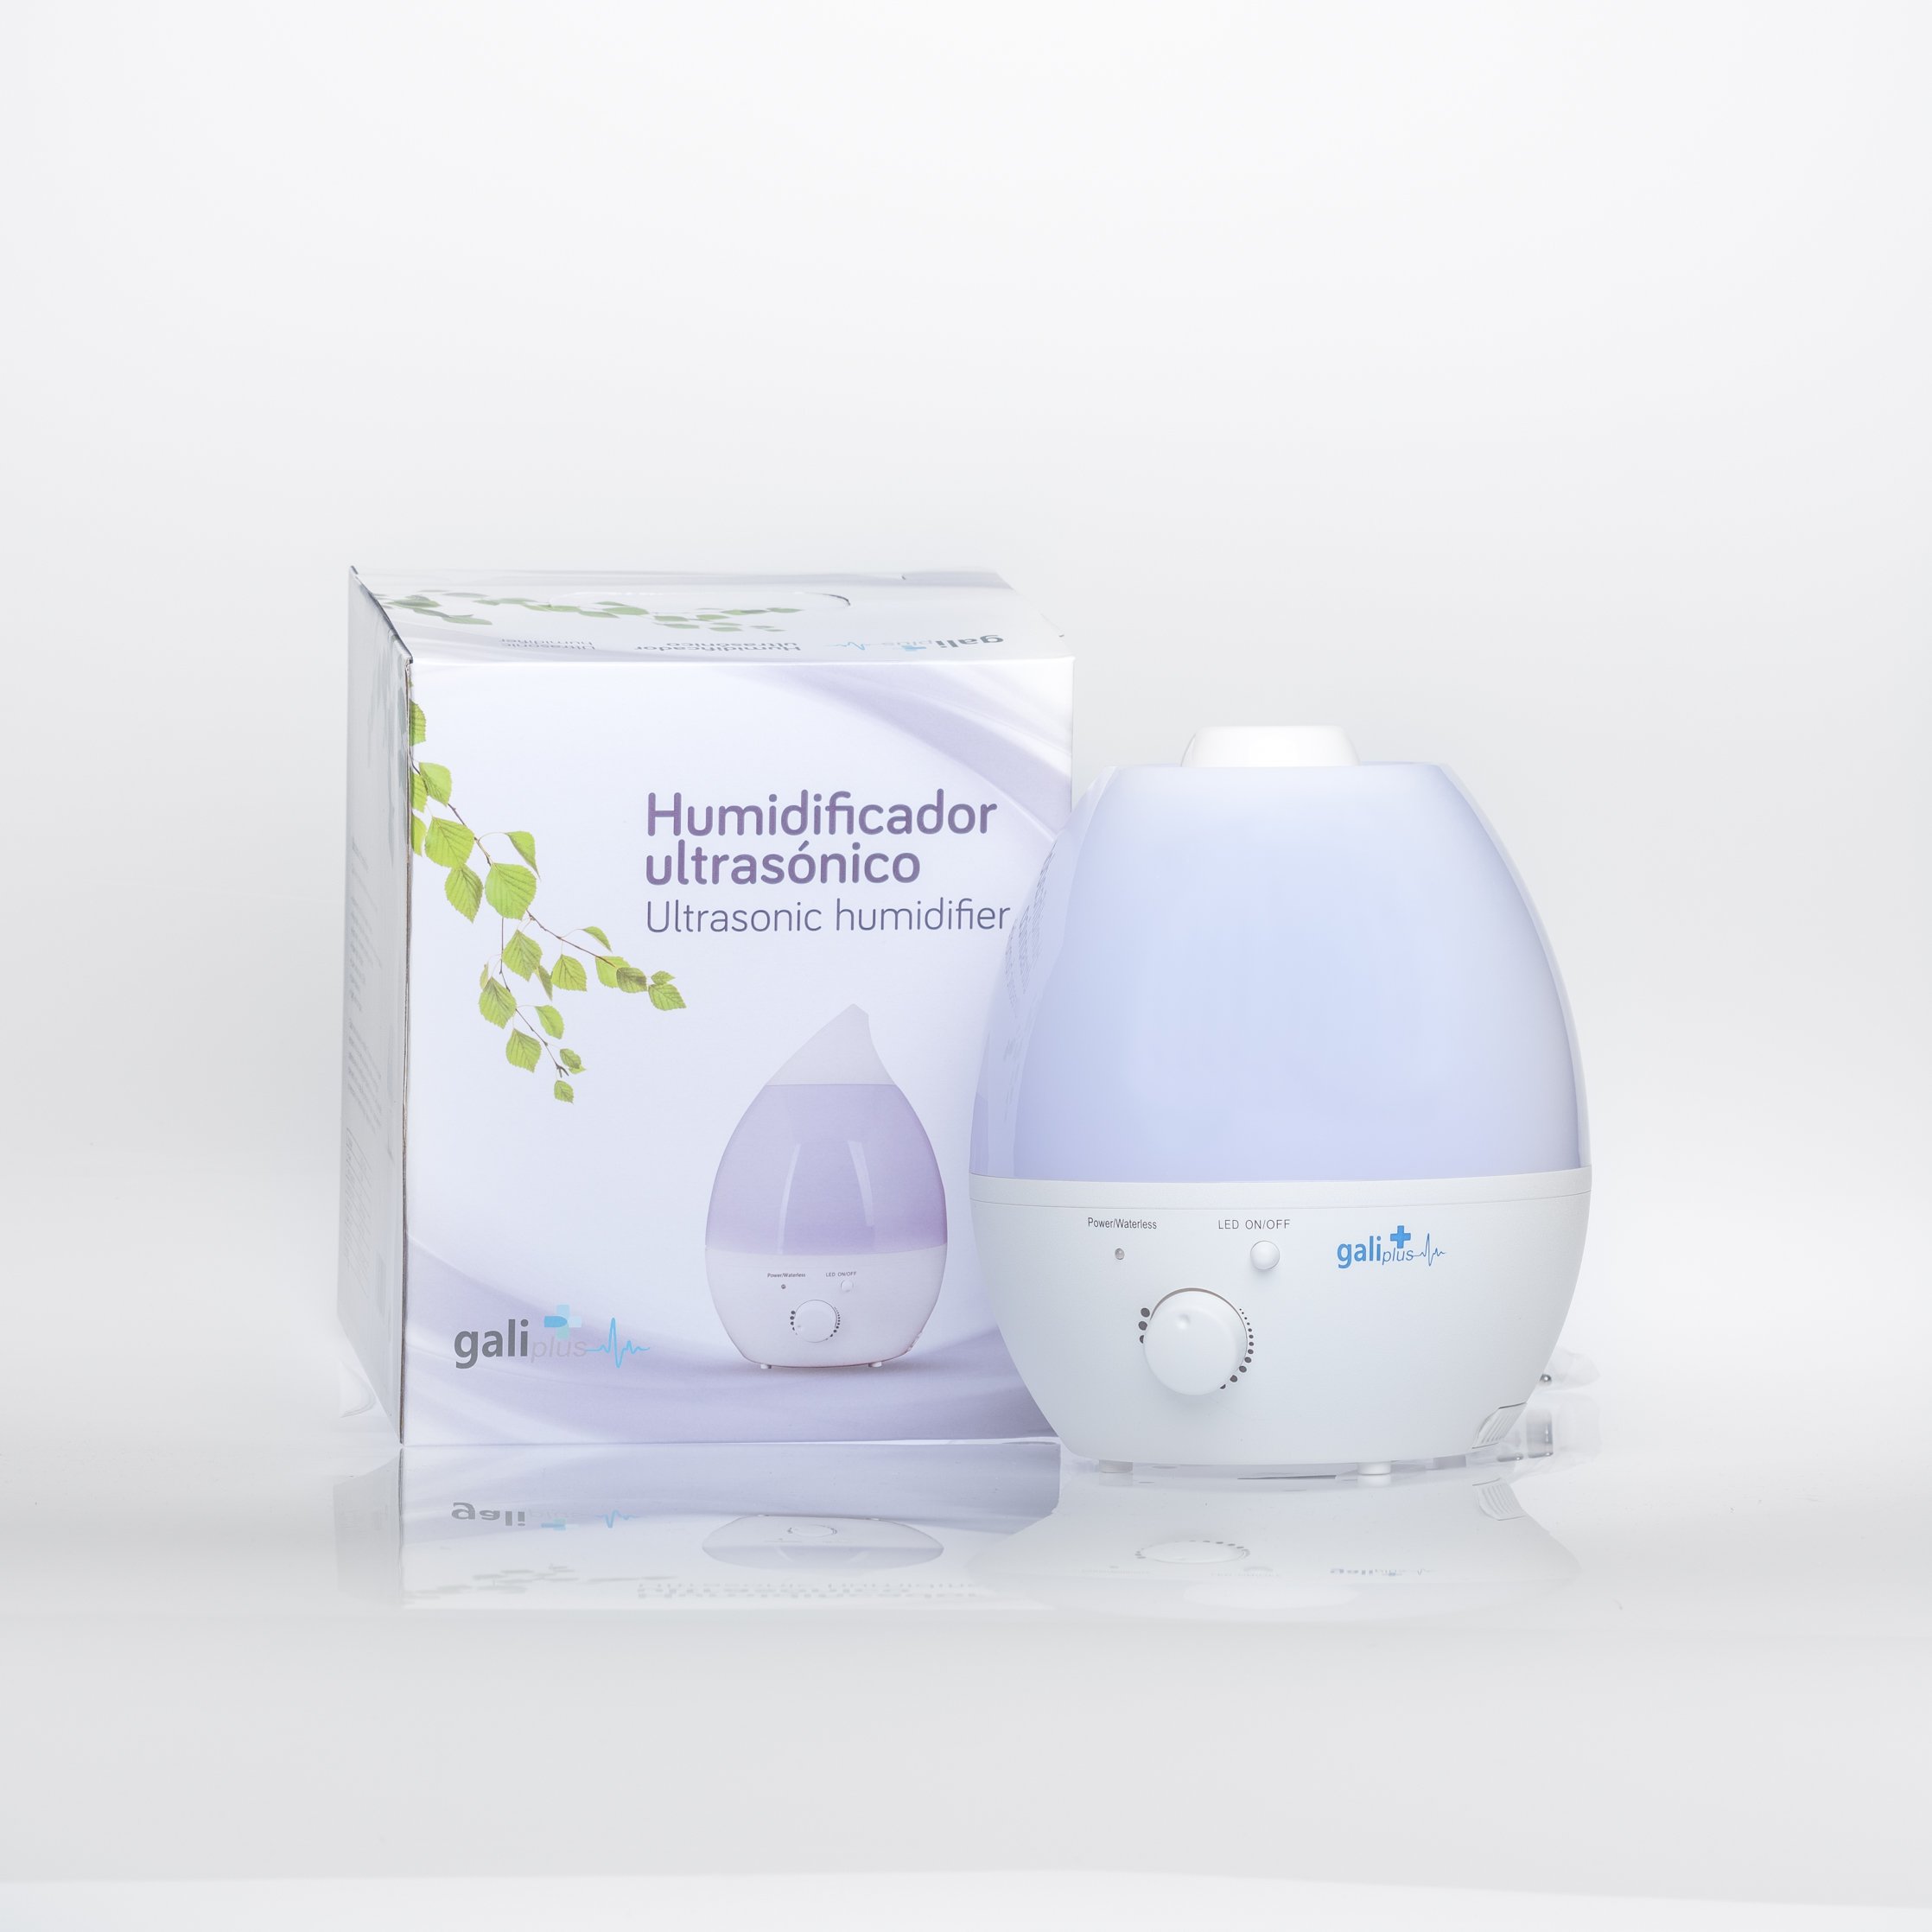 Humidificador Galiplus